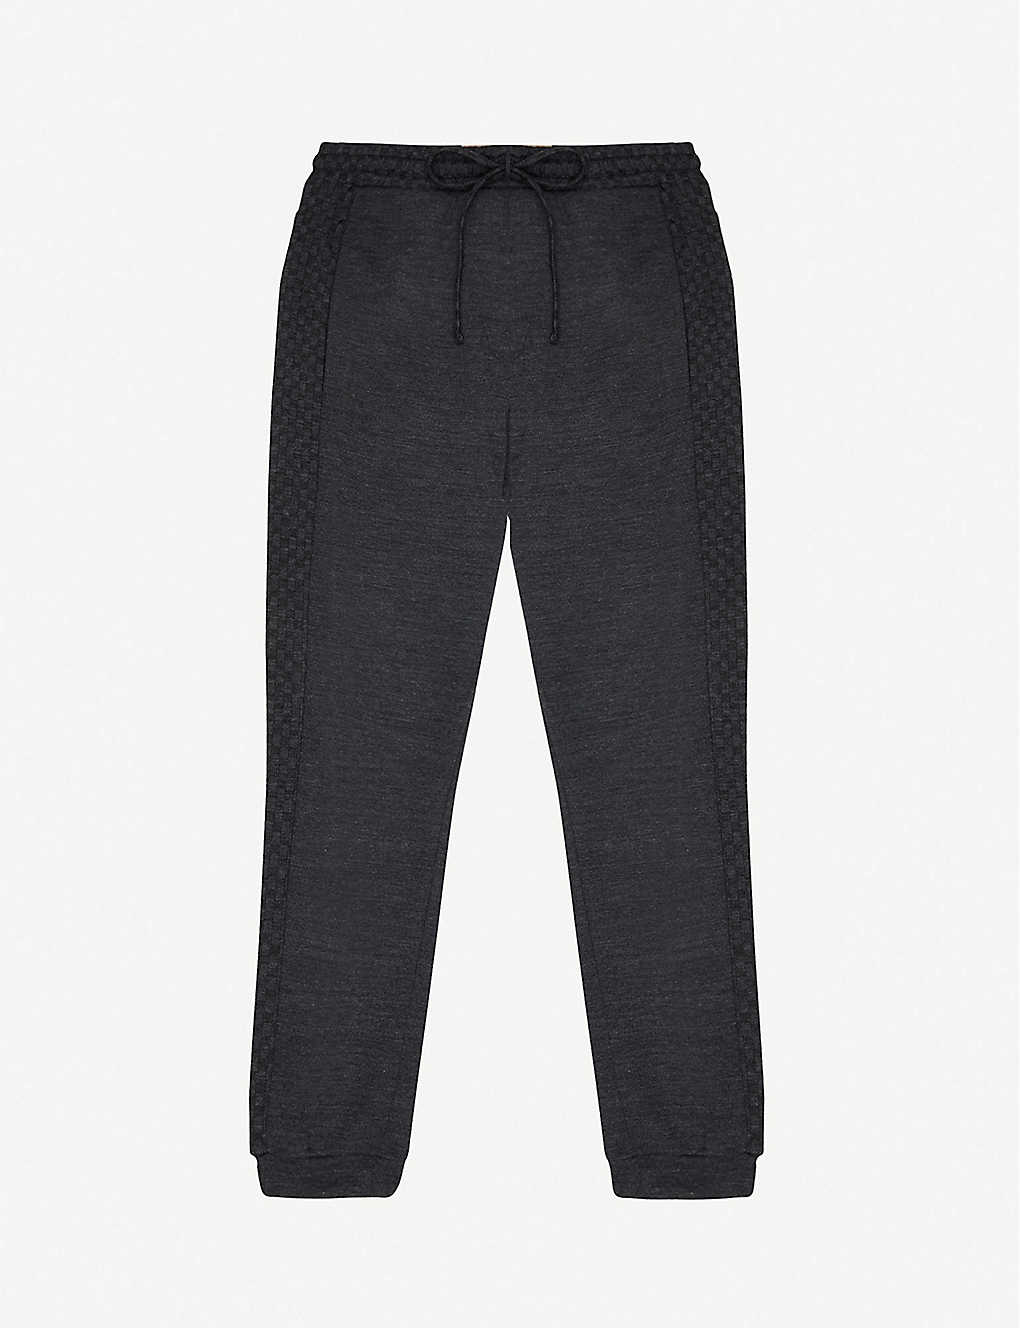 PREVU: Solander woven jogging bottoms